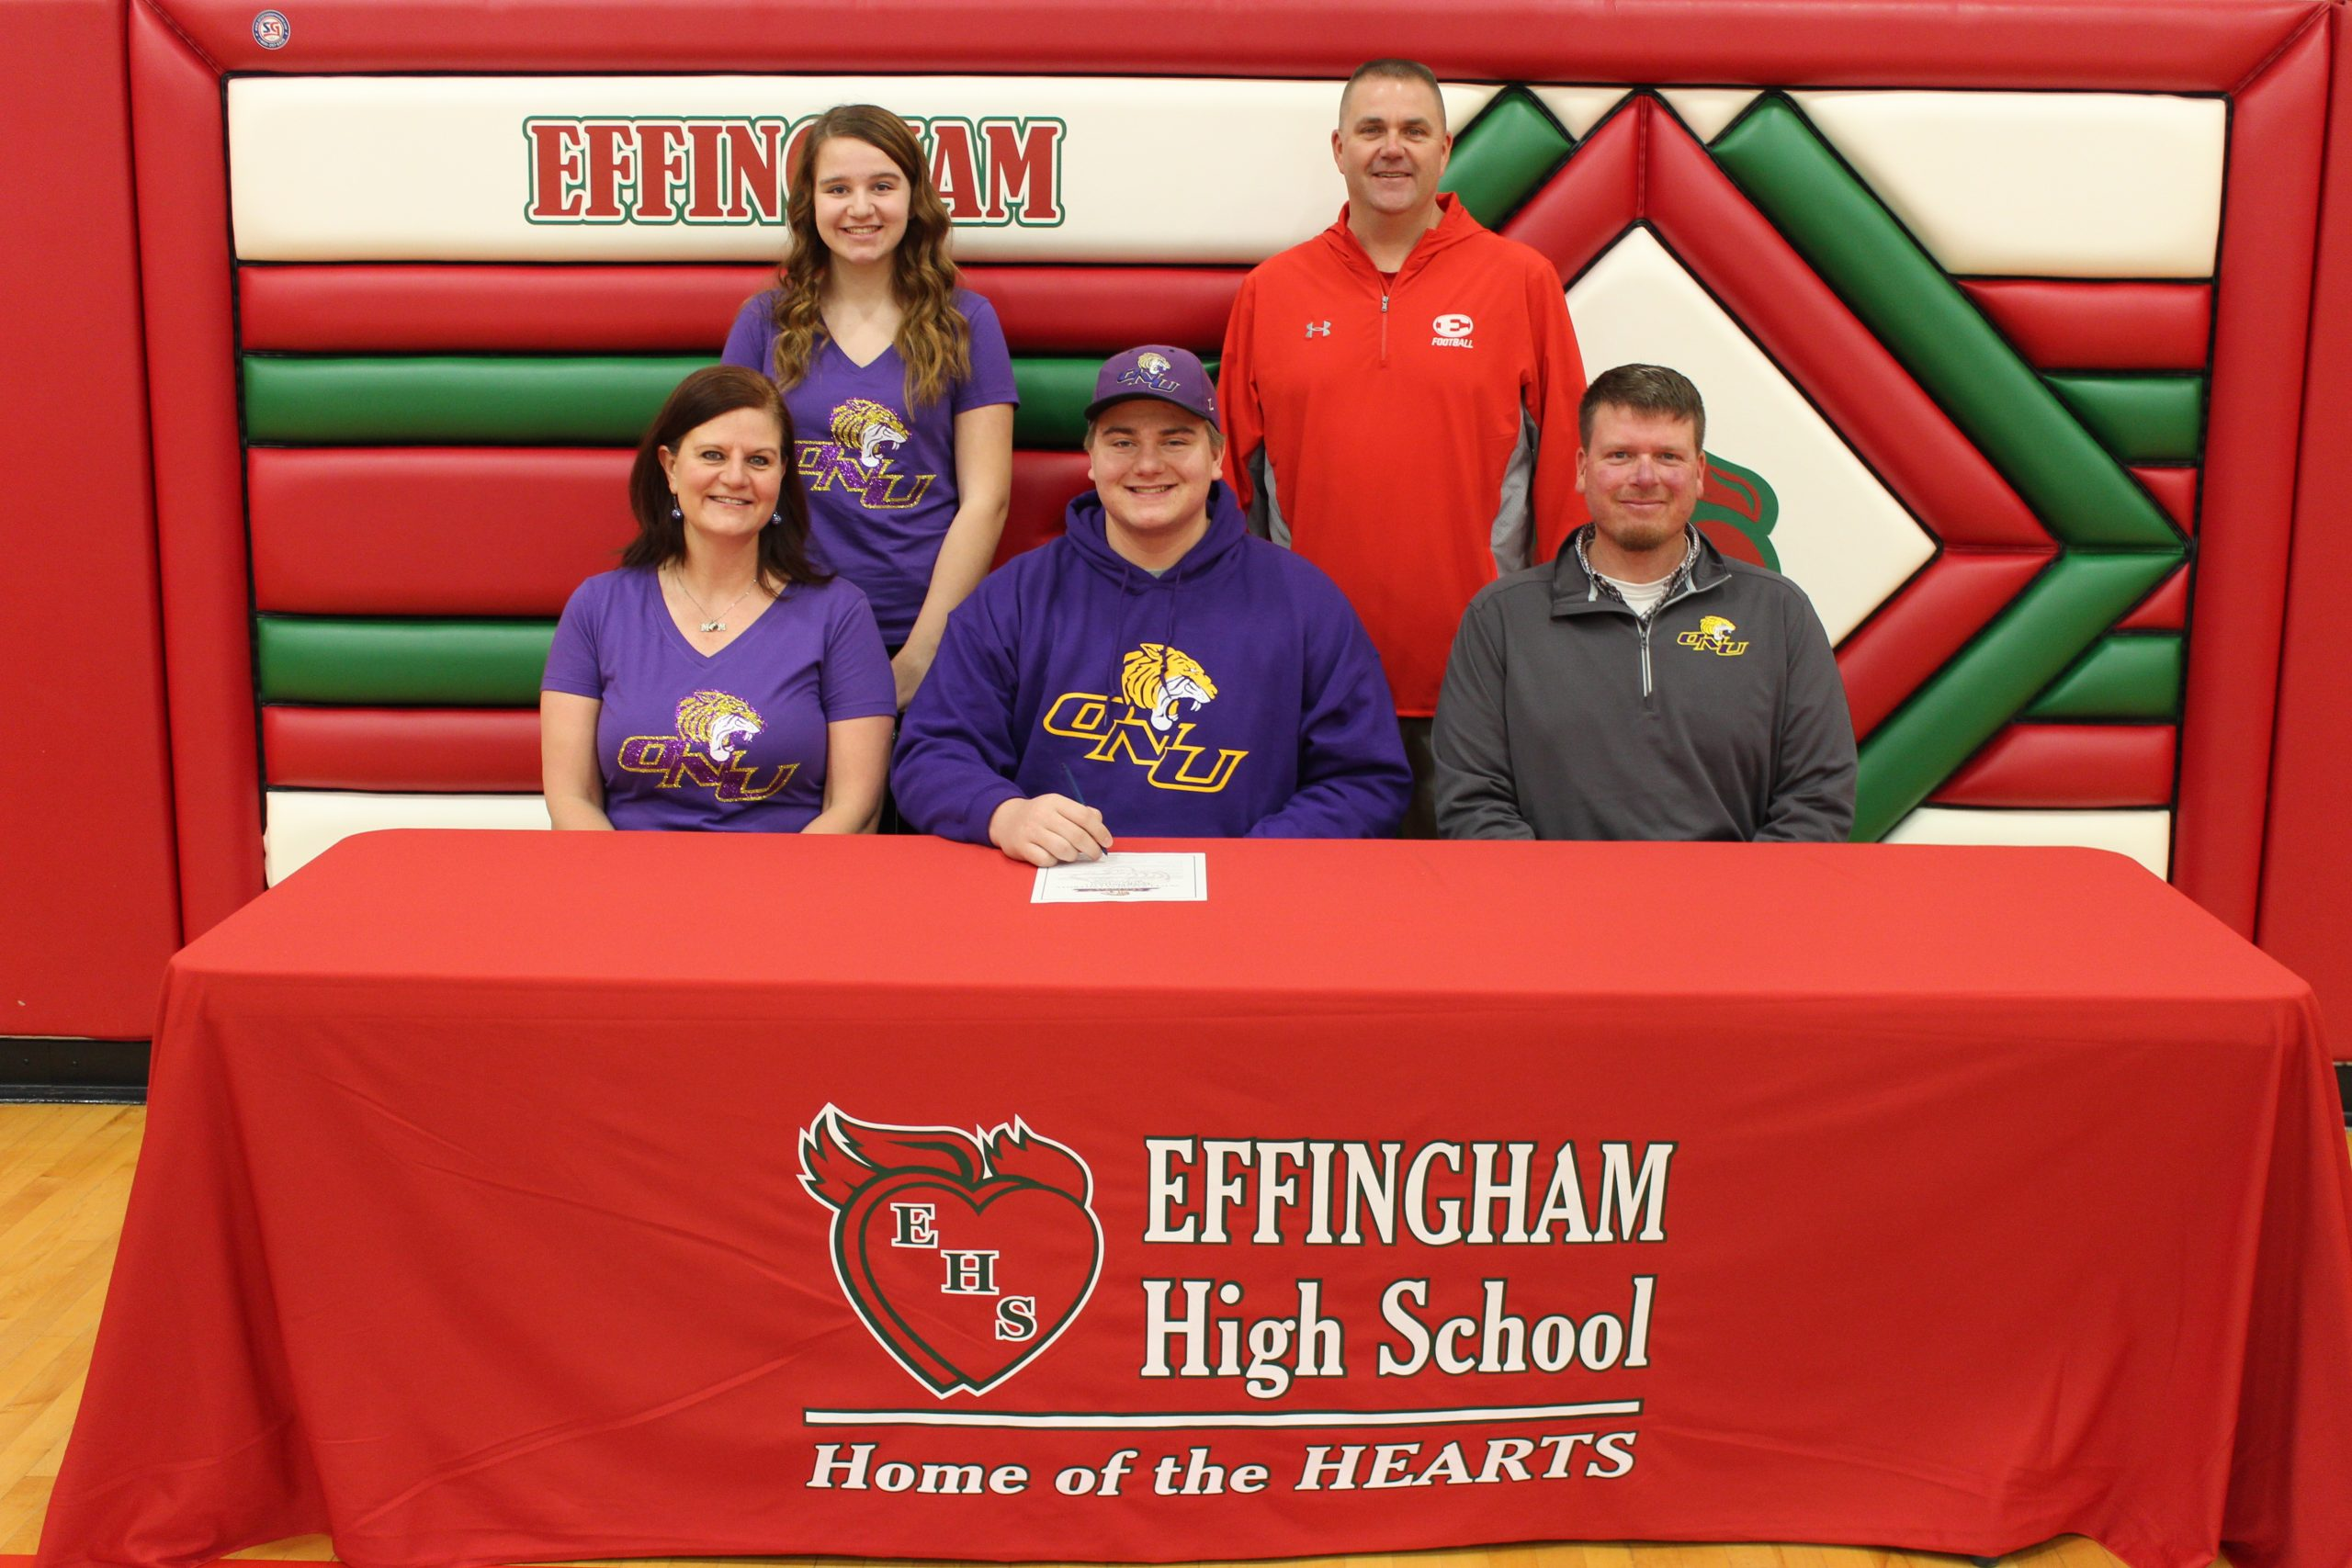 Drew Niebrugge Signs to Play Football at Olivet Nazarene University